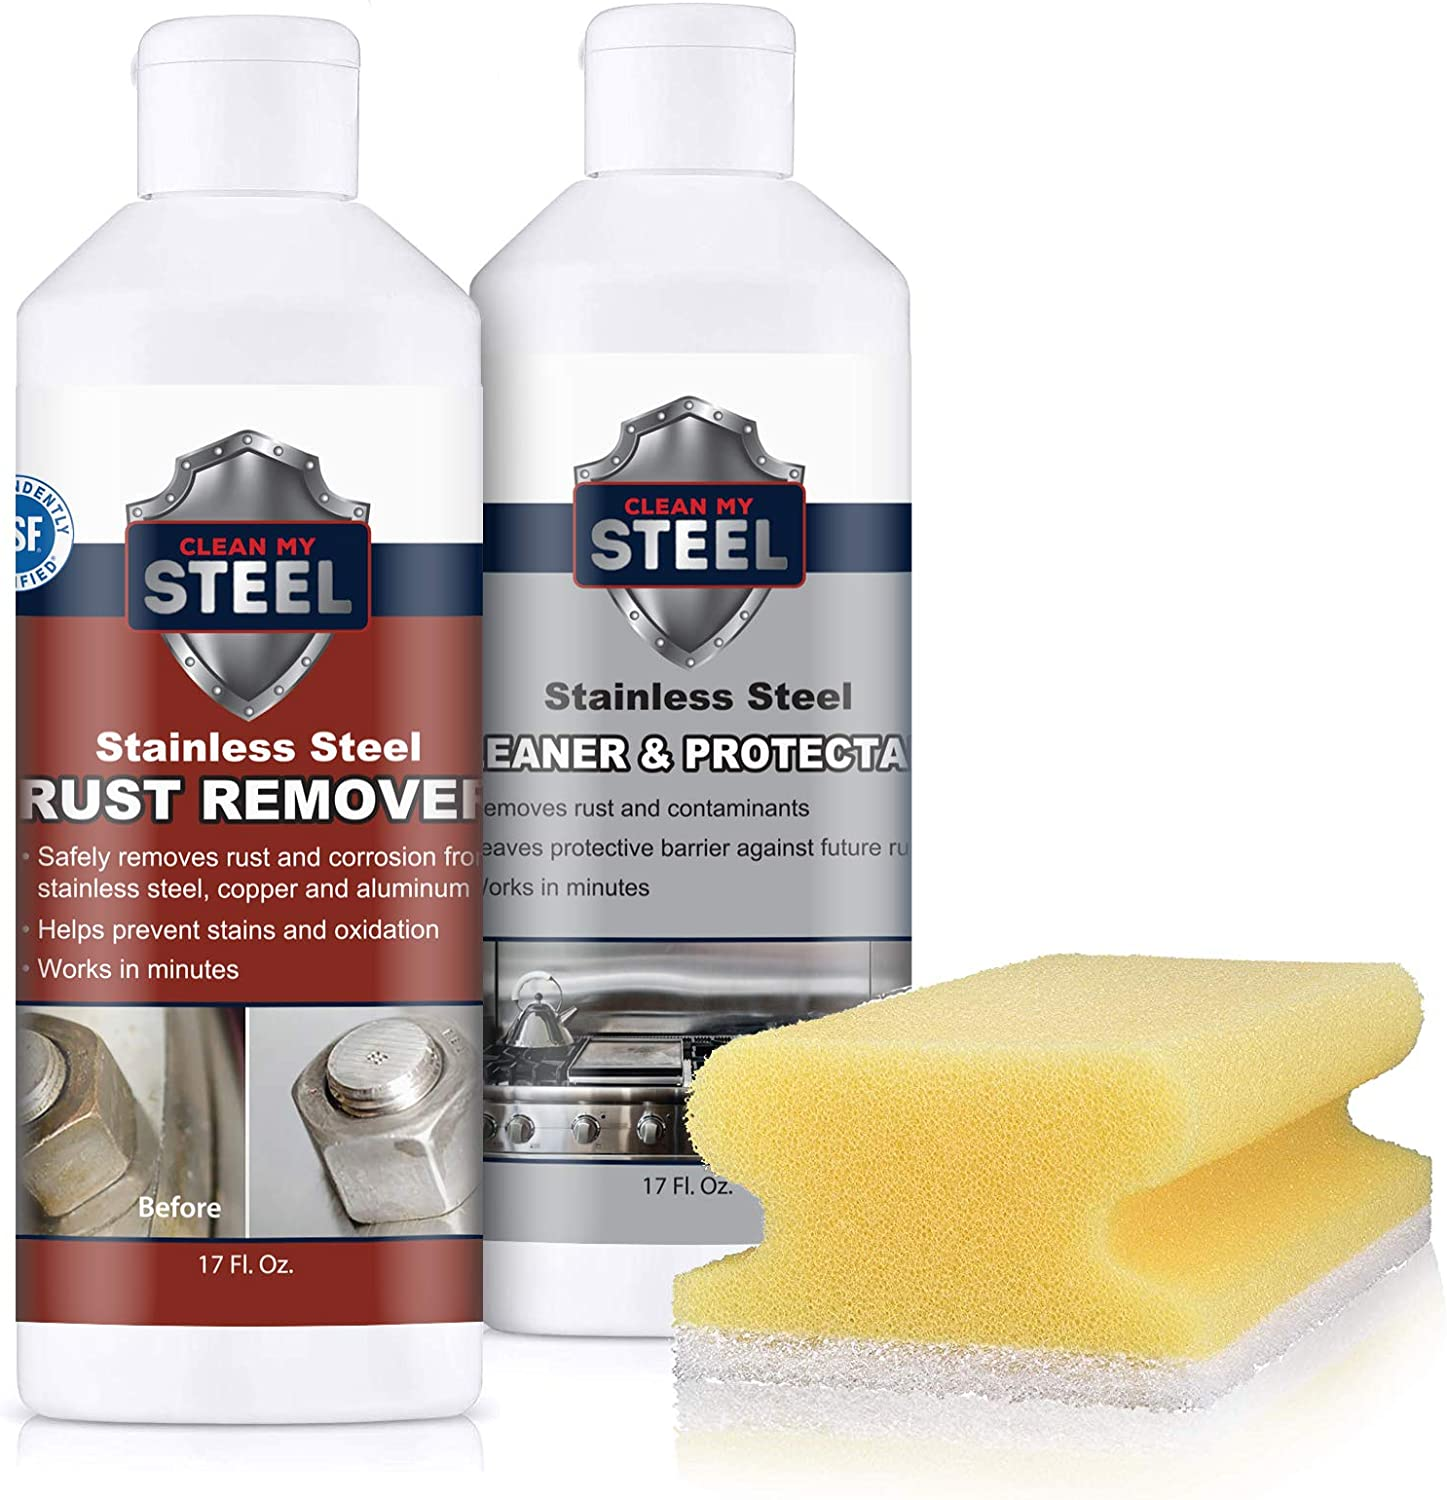 Stainless Steel Rust Cleaner Remover and Kits Charlotte Mall Protector depot w Spong